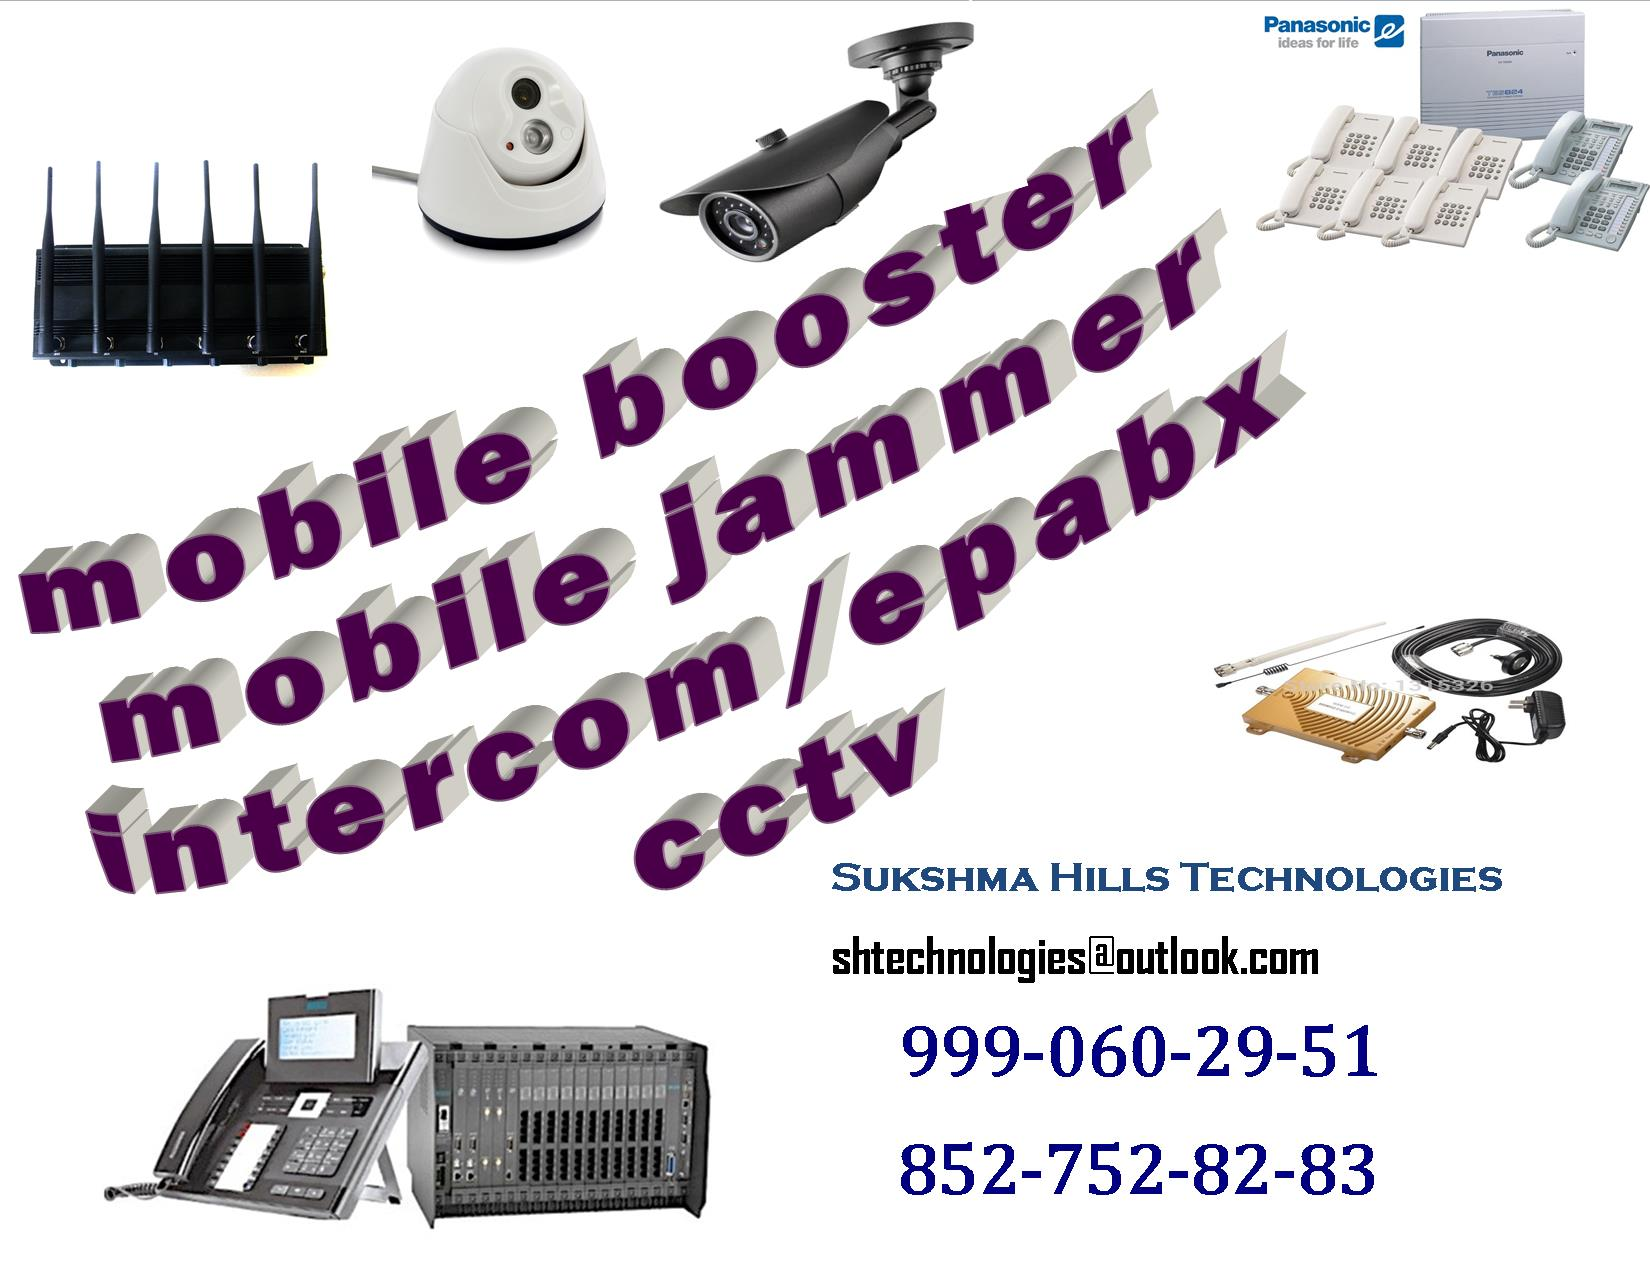 Mobile Signal Booster|Sukshma Hills Technologies